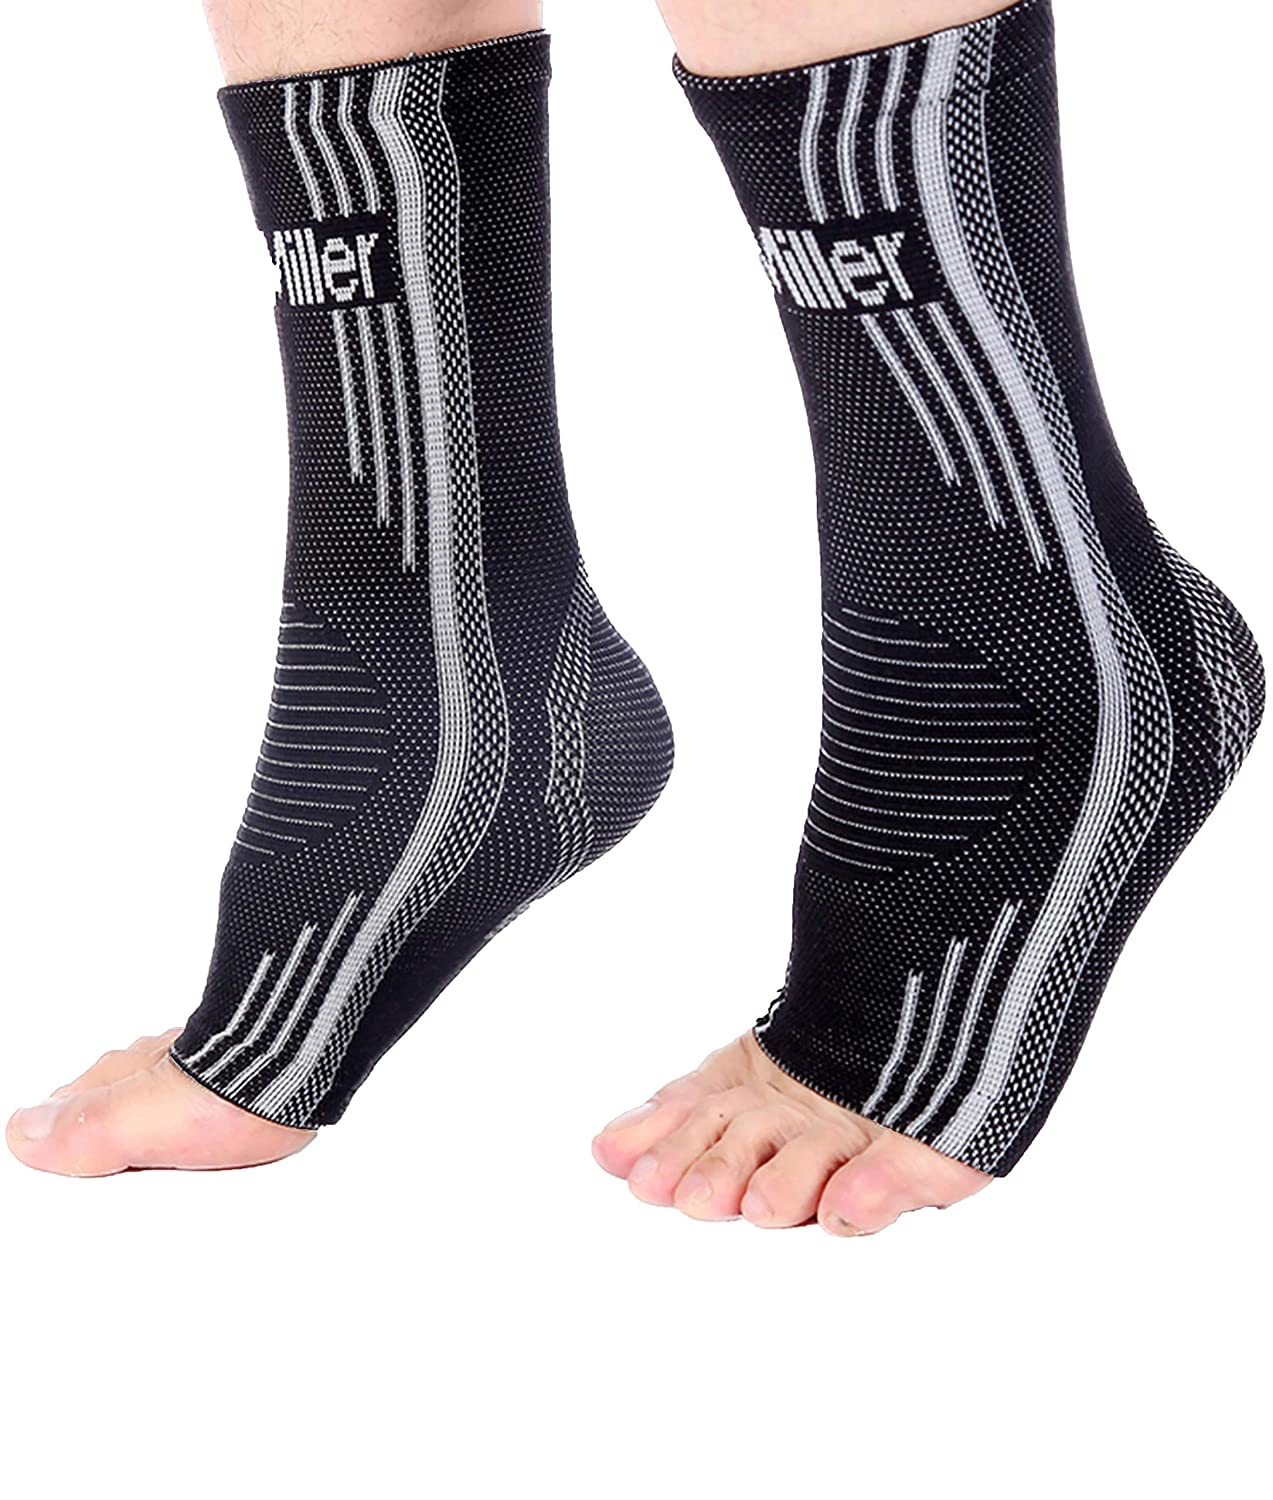 Doc Miller Ankle Brace Compression depot - Foot Pair Best Sl Support Challenge the lowest price of Japan 1